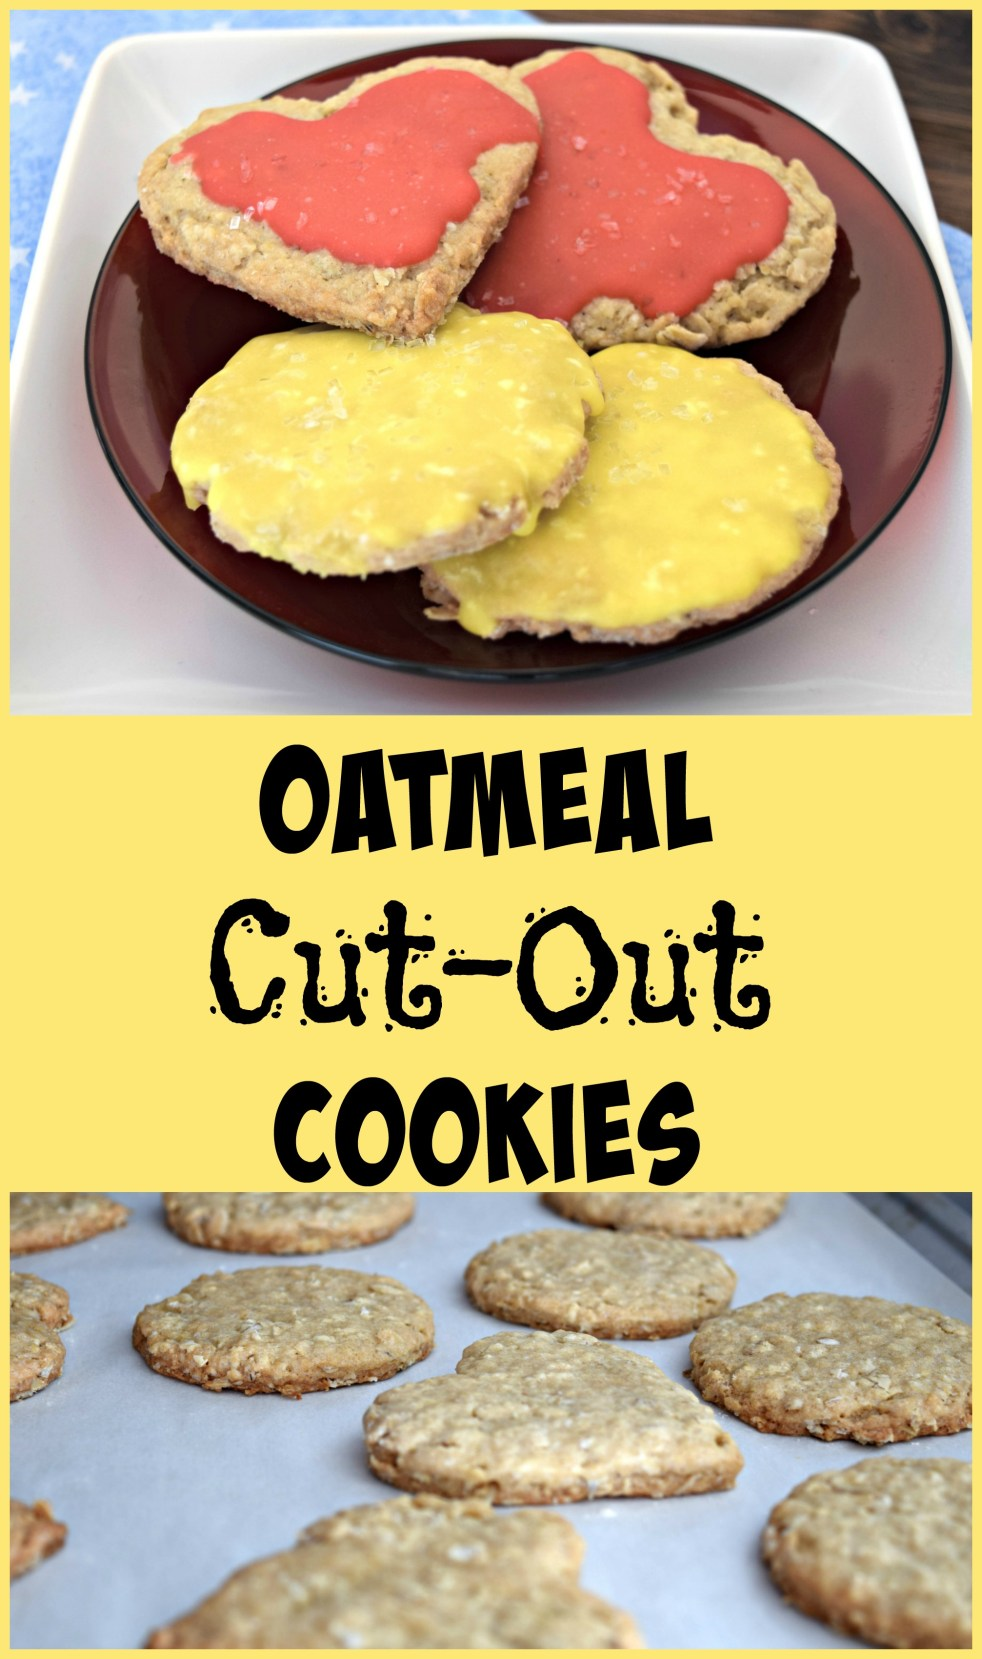 oatmeal cut out cookies with coconut glaze